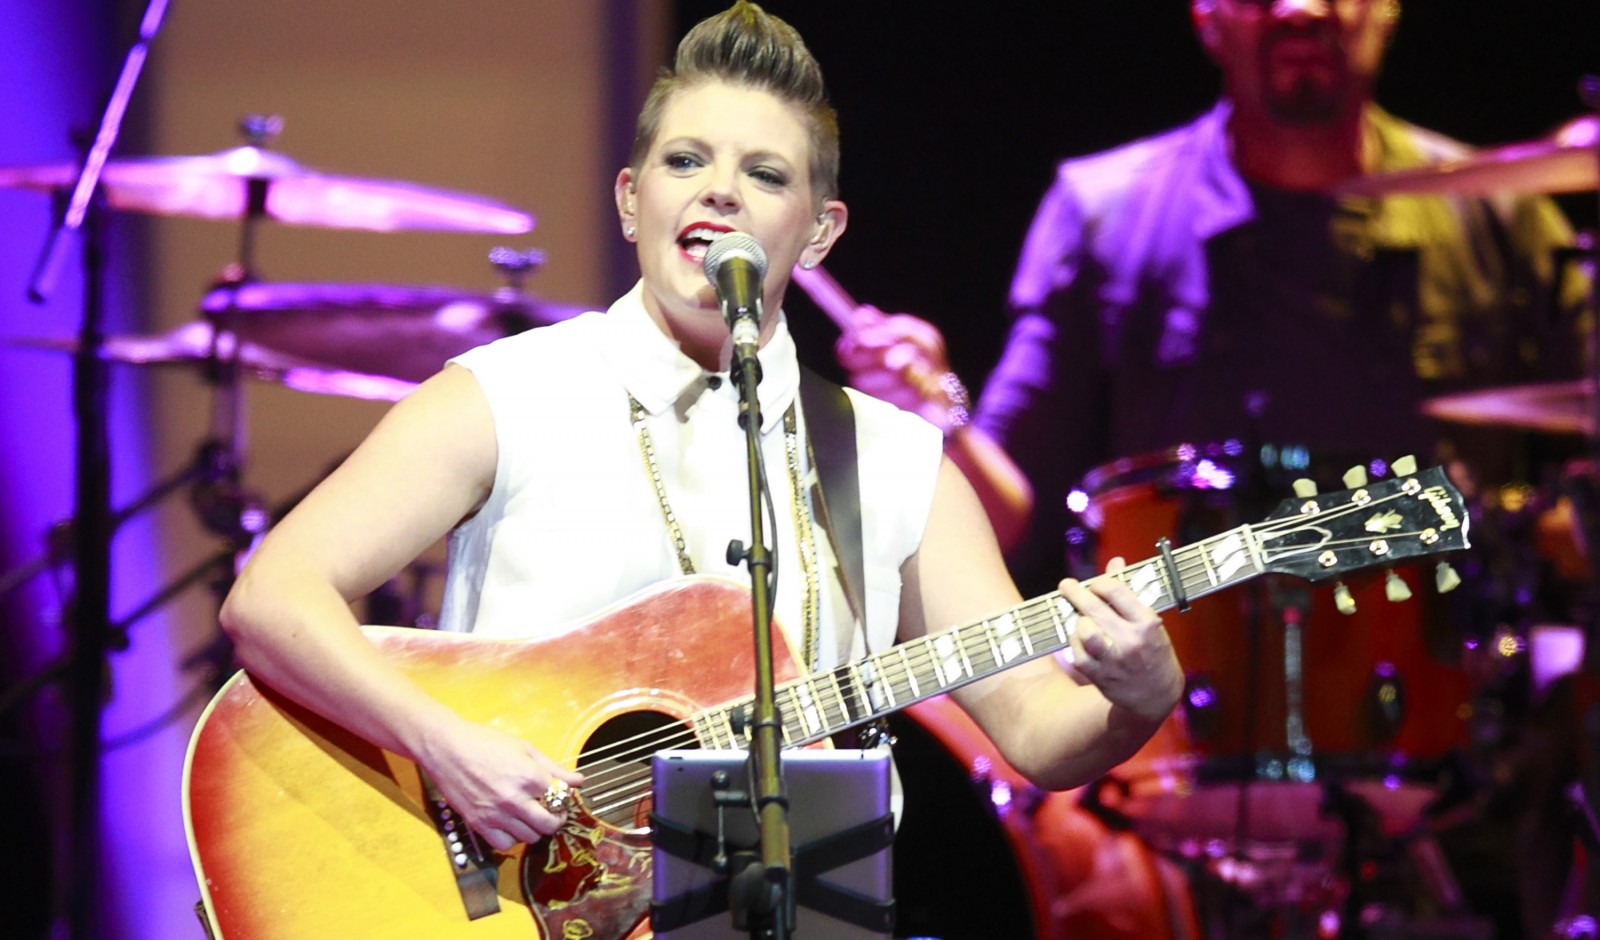 Natalie Maines and the Dixie Chicks will perform Sept. 17 at First Niagara Center.